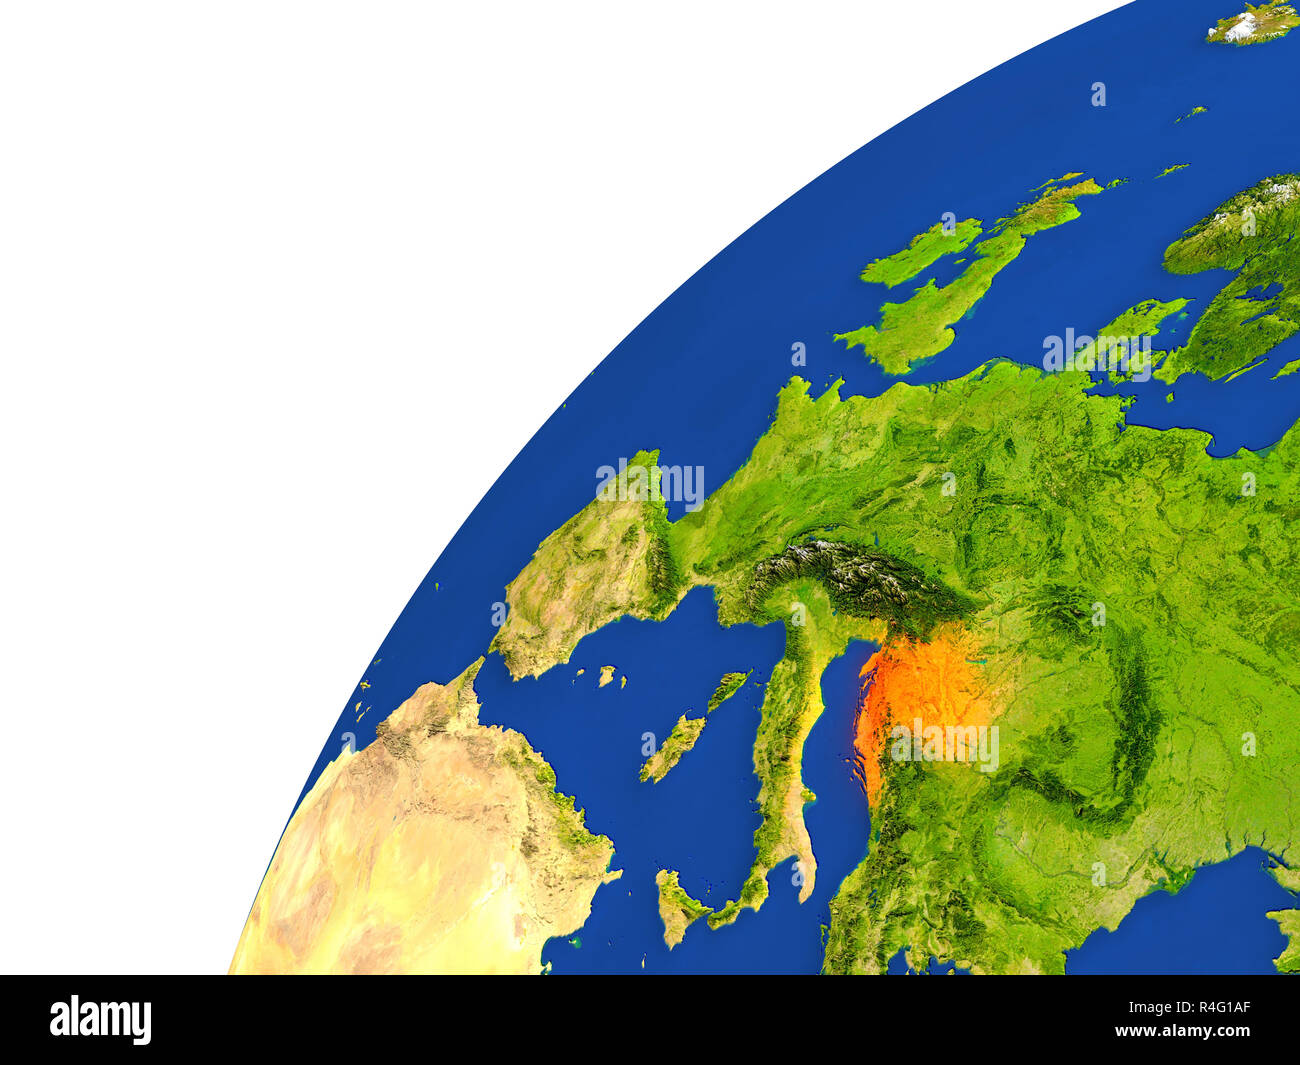 Country of Croatia satellite view Stock Photo: 226545719 - Alamy on map of sn, map of ke, map of ic, map of sz, map of asia, map of ta, map of mh, map of gh, map of spangdahlem air force base, map of sh, map of ci, map of cl, map of ei, map of africa, map of air force bases overseas, map of afr, map of gl, map of ggc, map of re, map of afganis,